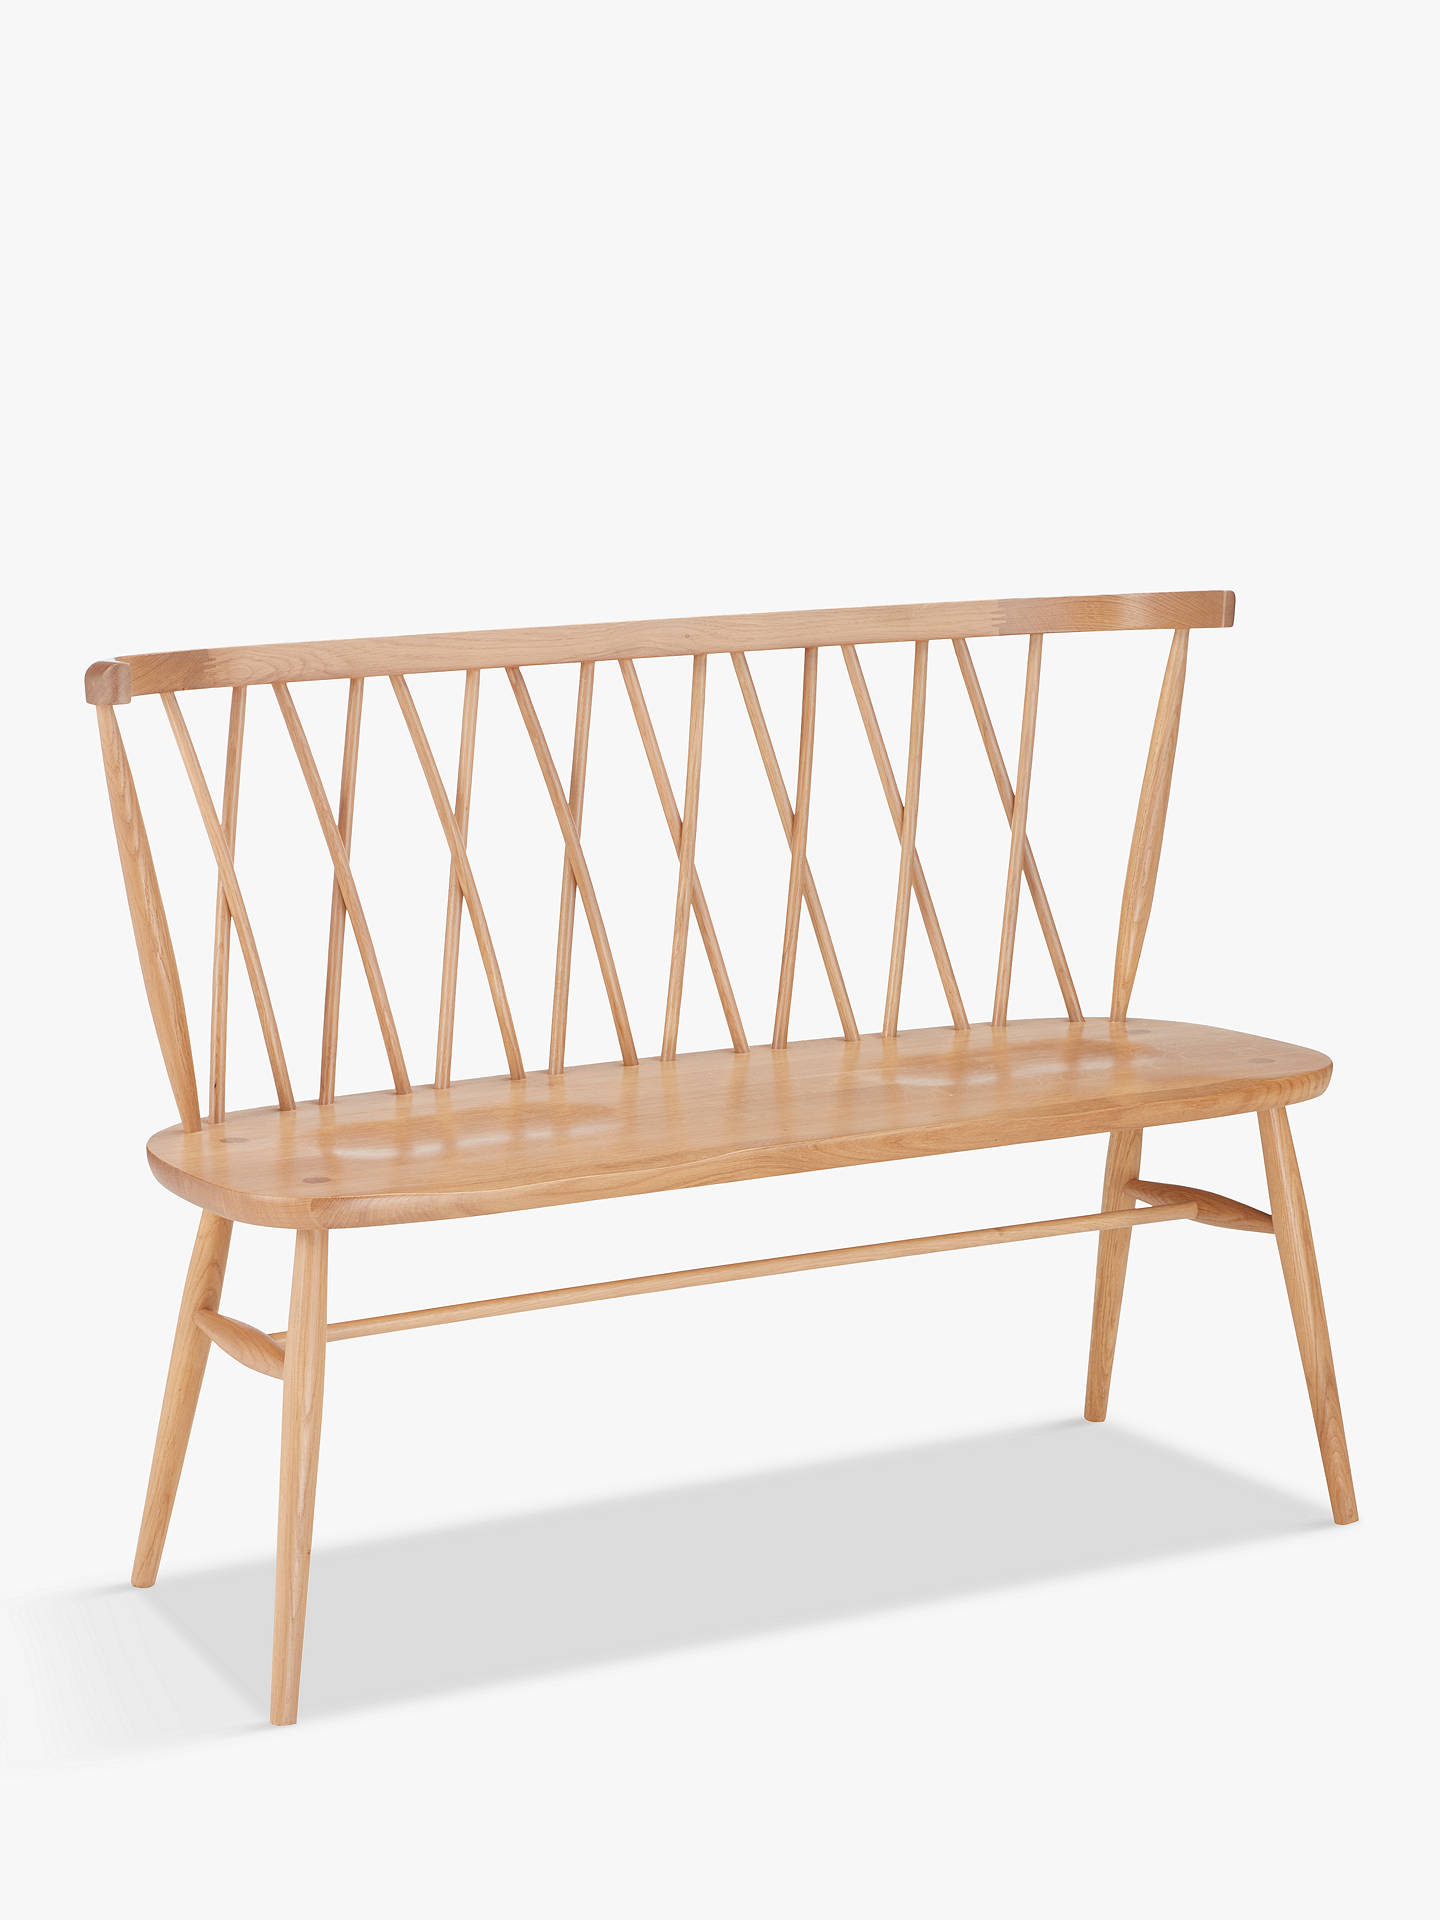 Ercol For John Lewis Shalstone 2 Seater Dining Bench Oak